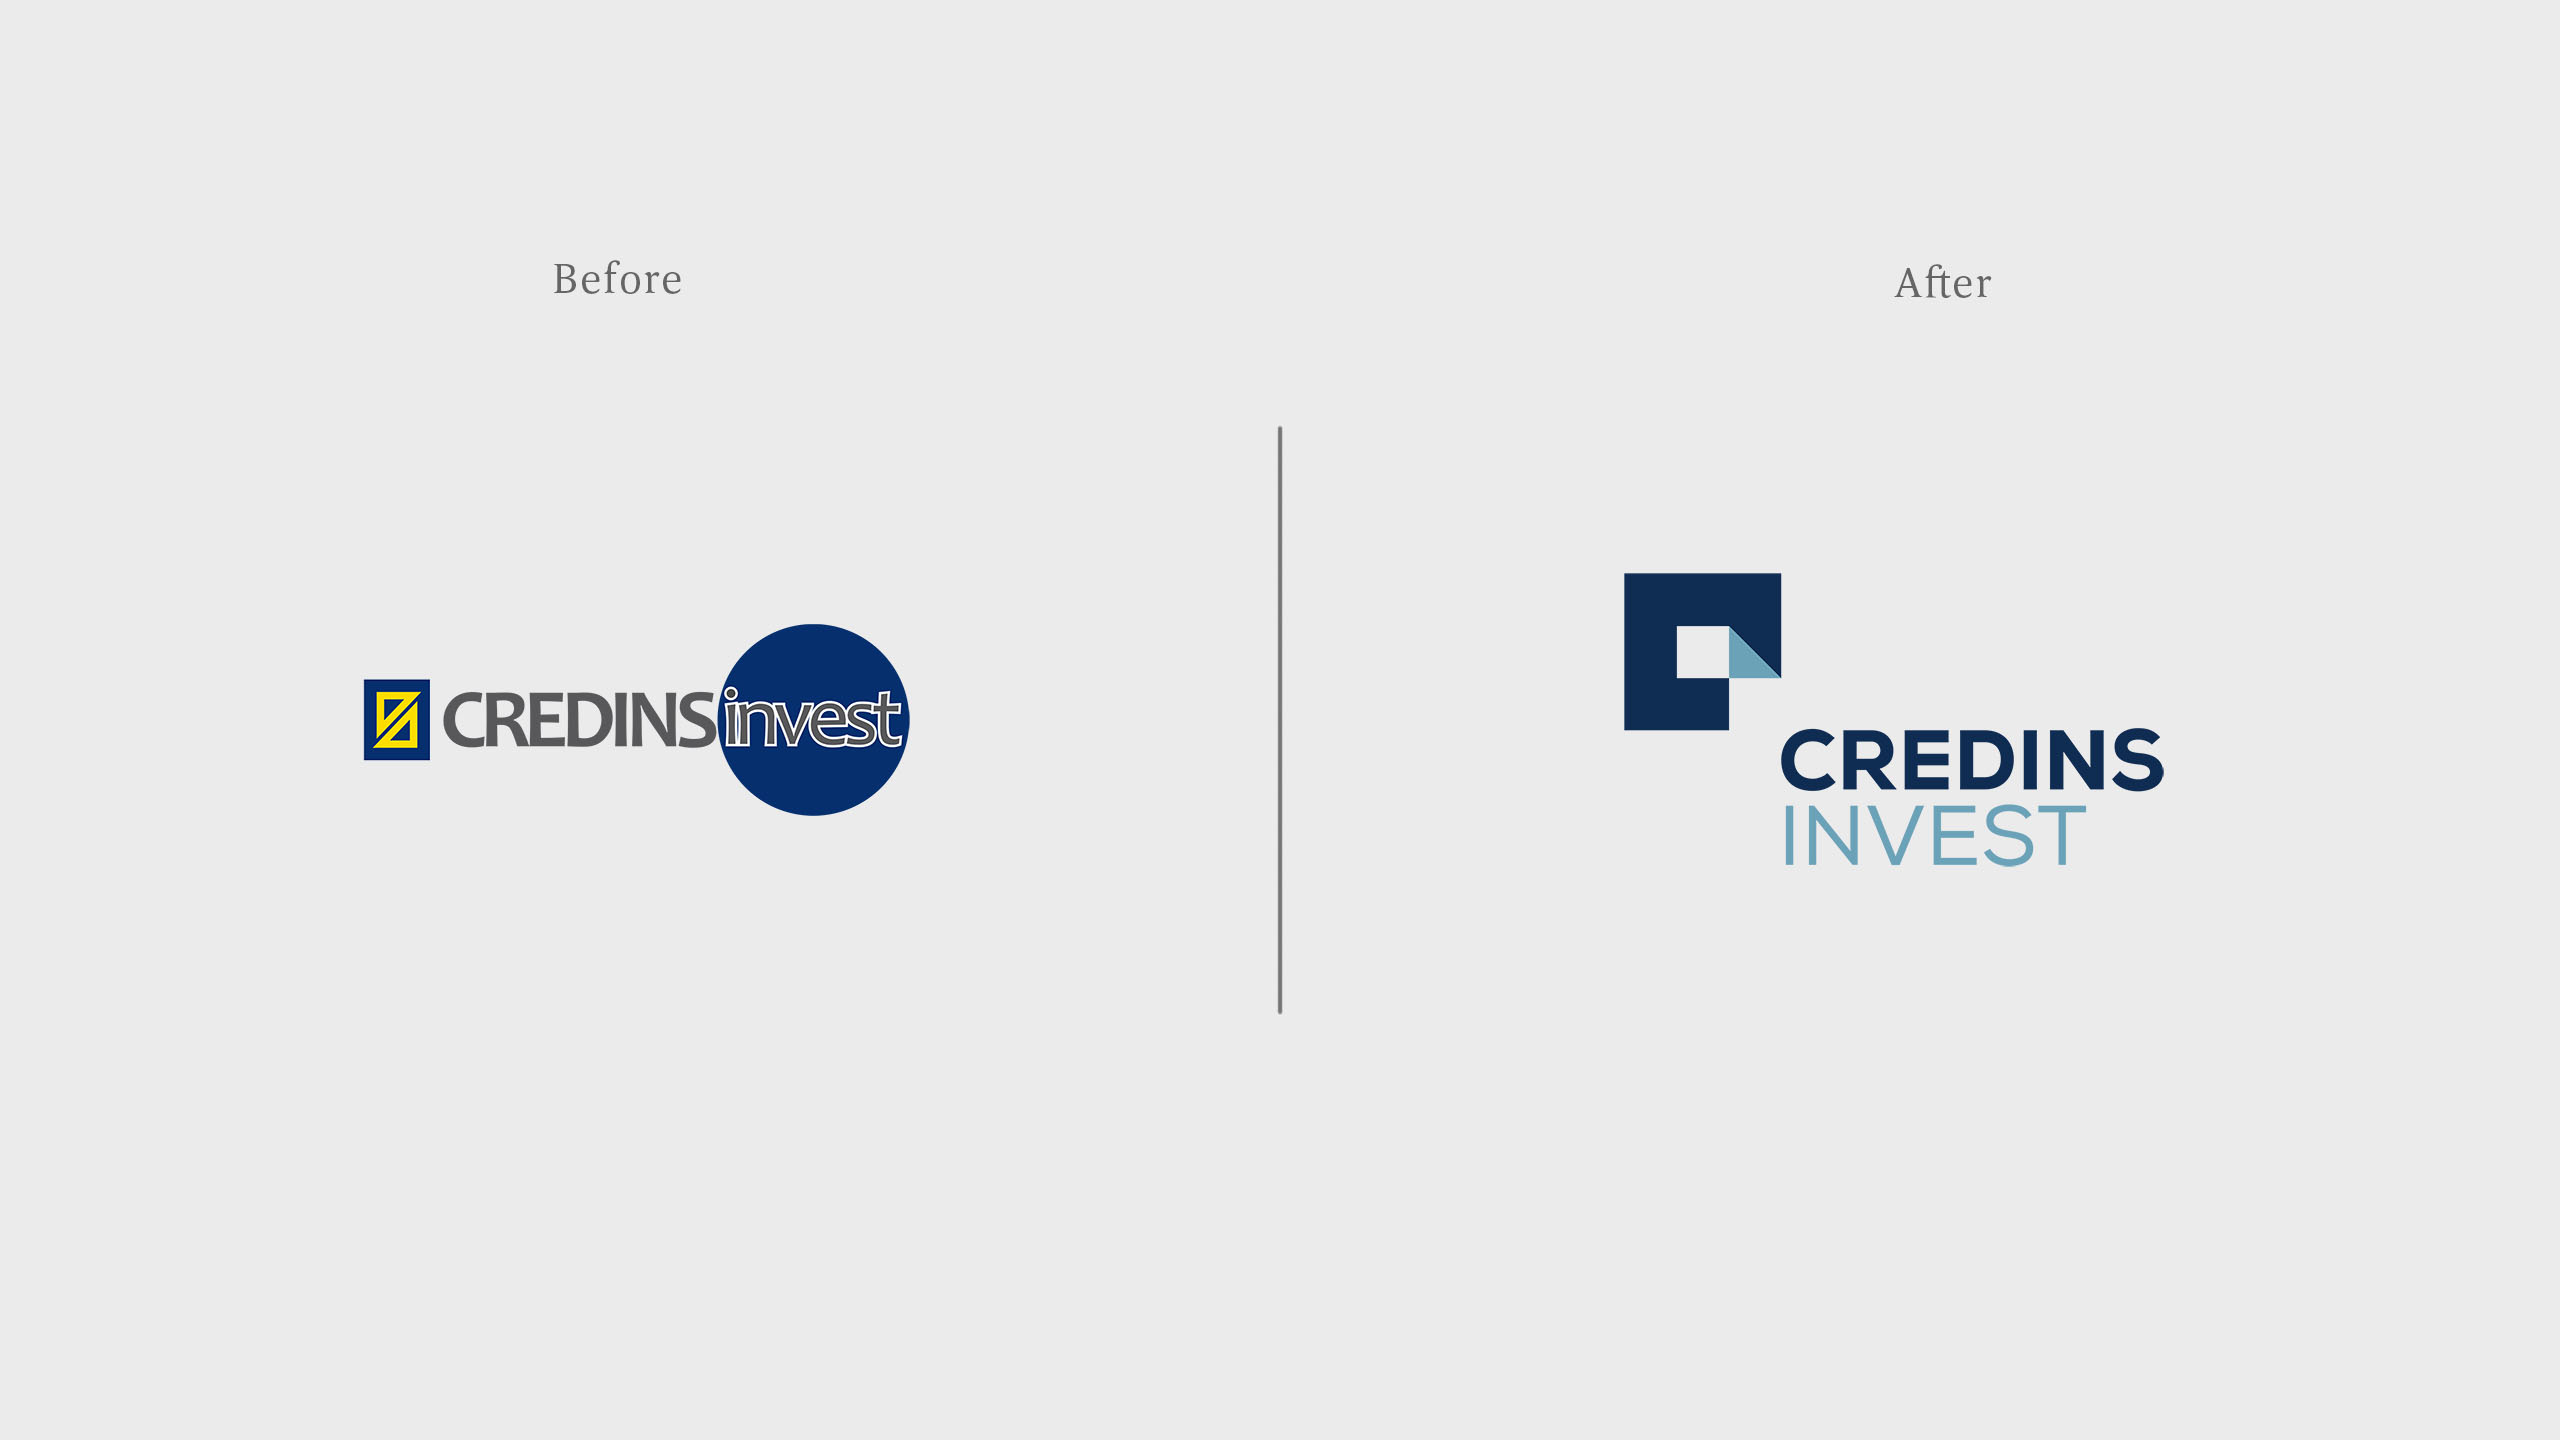 Credins Invest Project Img 11 - Vatra Agency / Founder & CEO Gerton Bejo